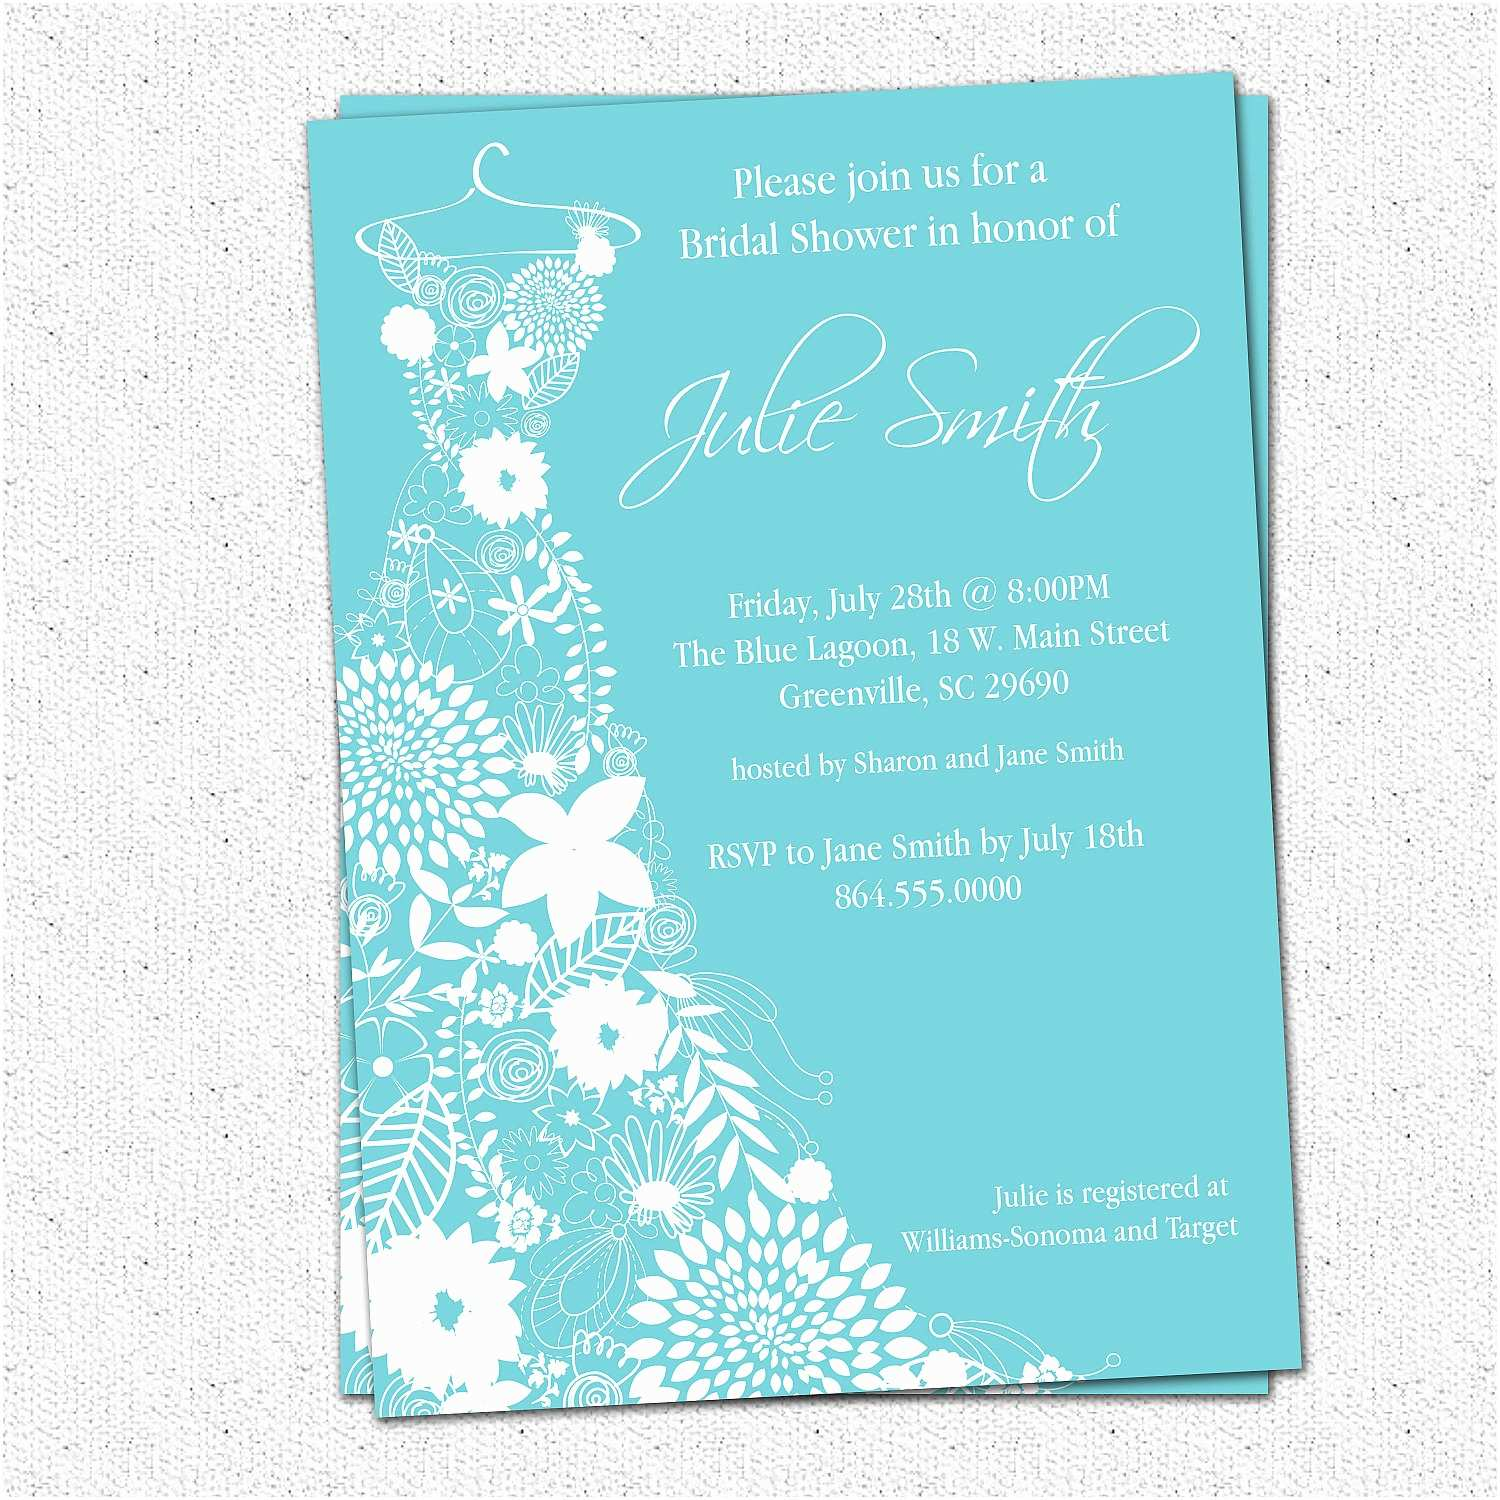 Bridal Party Invitations Bridal Shower Invitation Templates Beepmunk